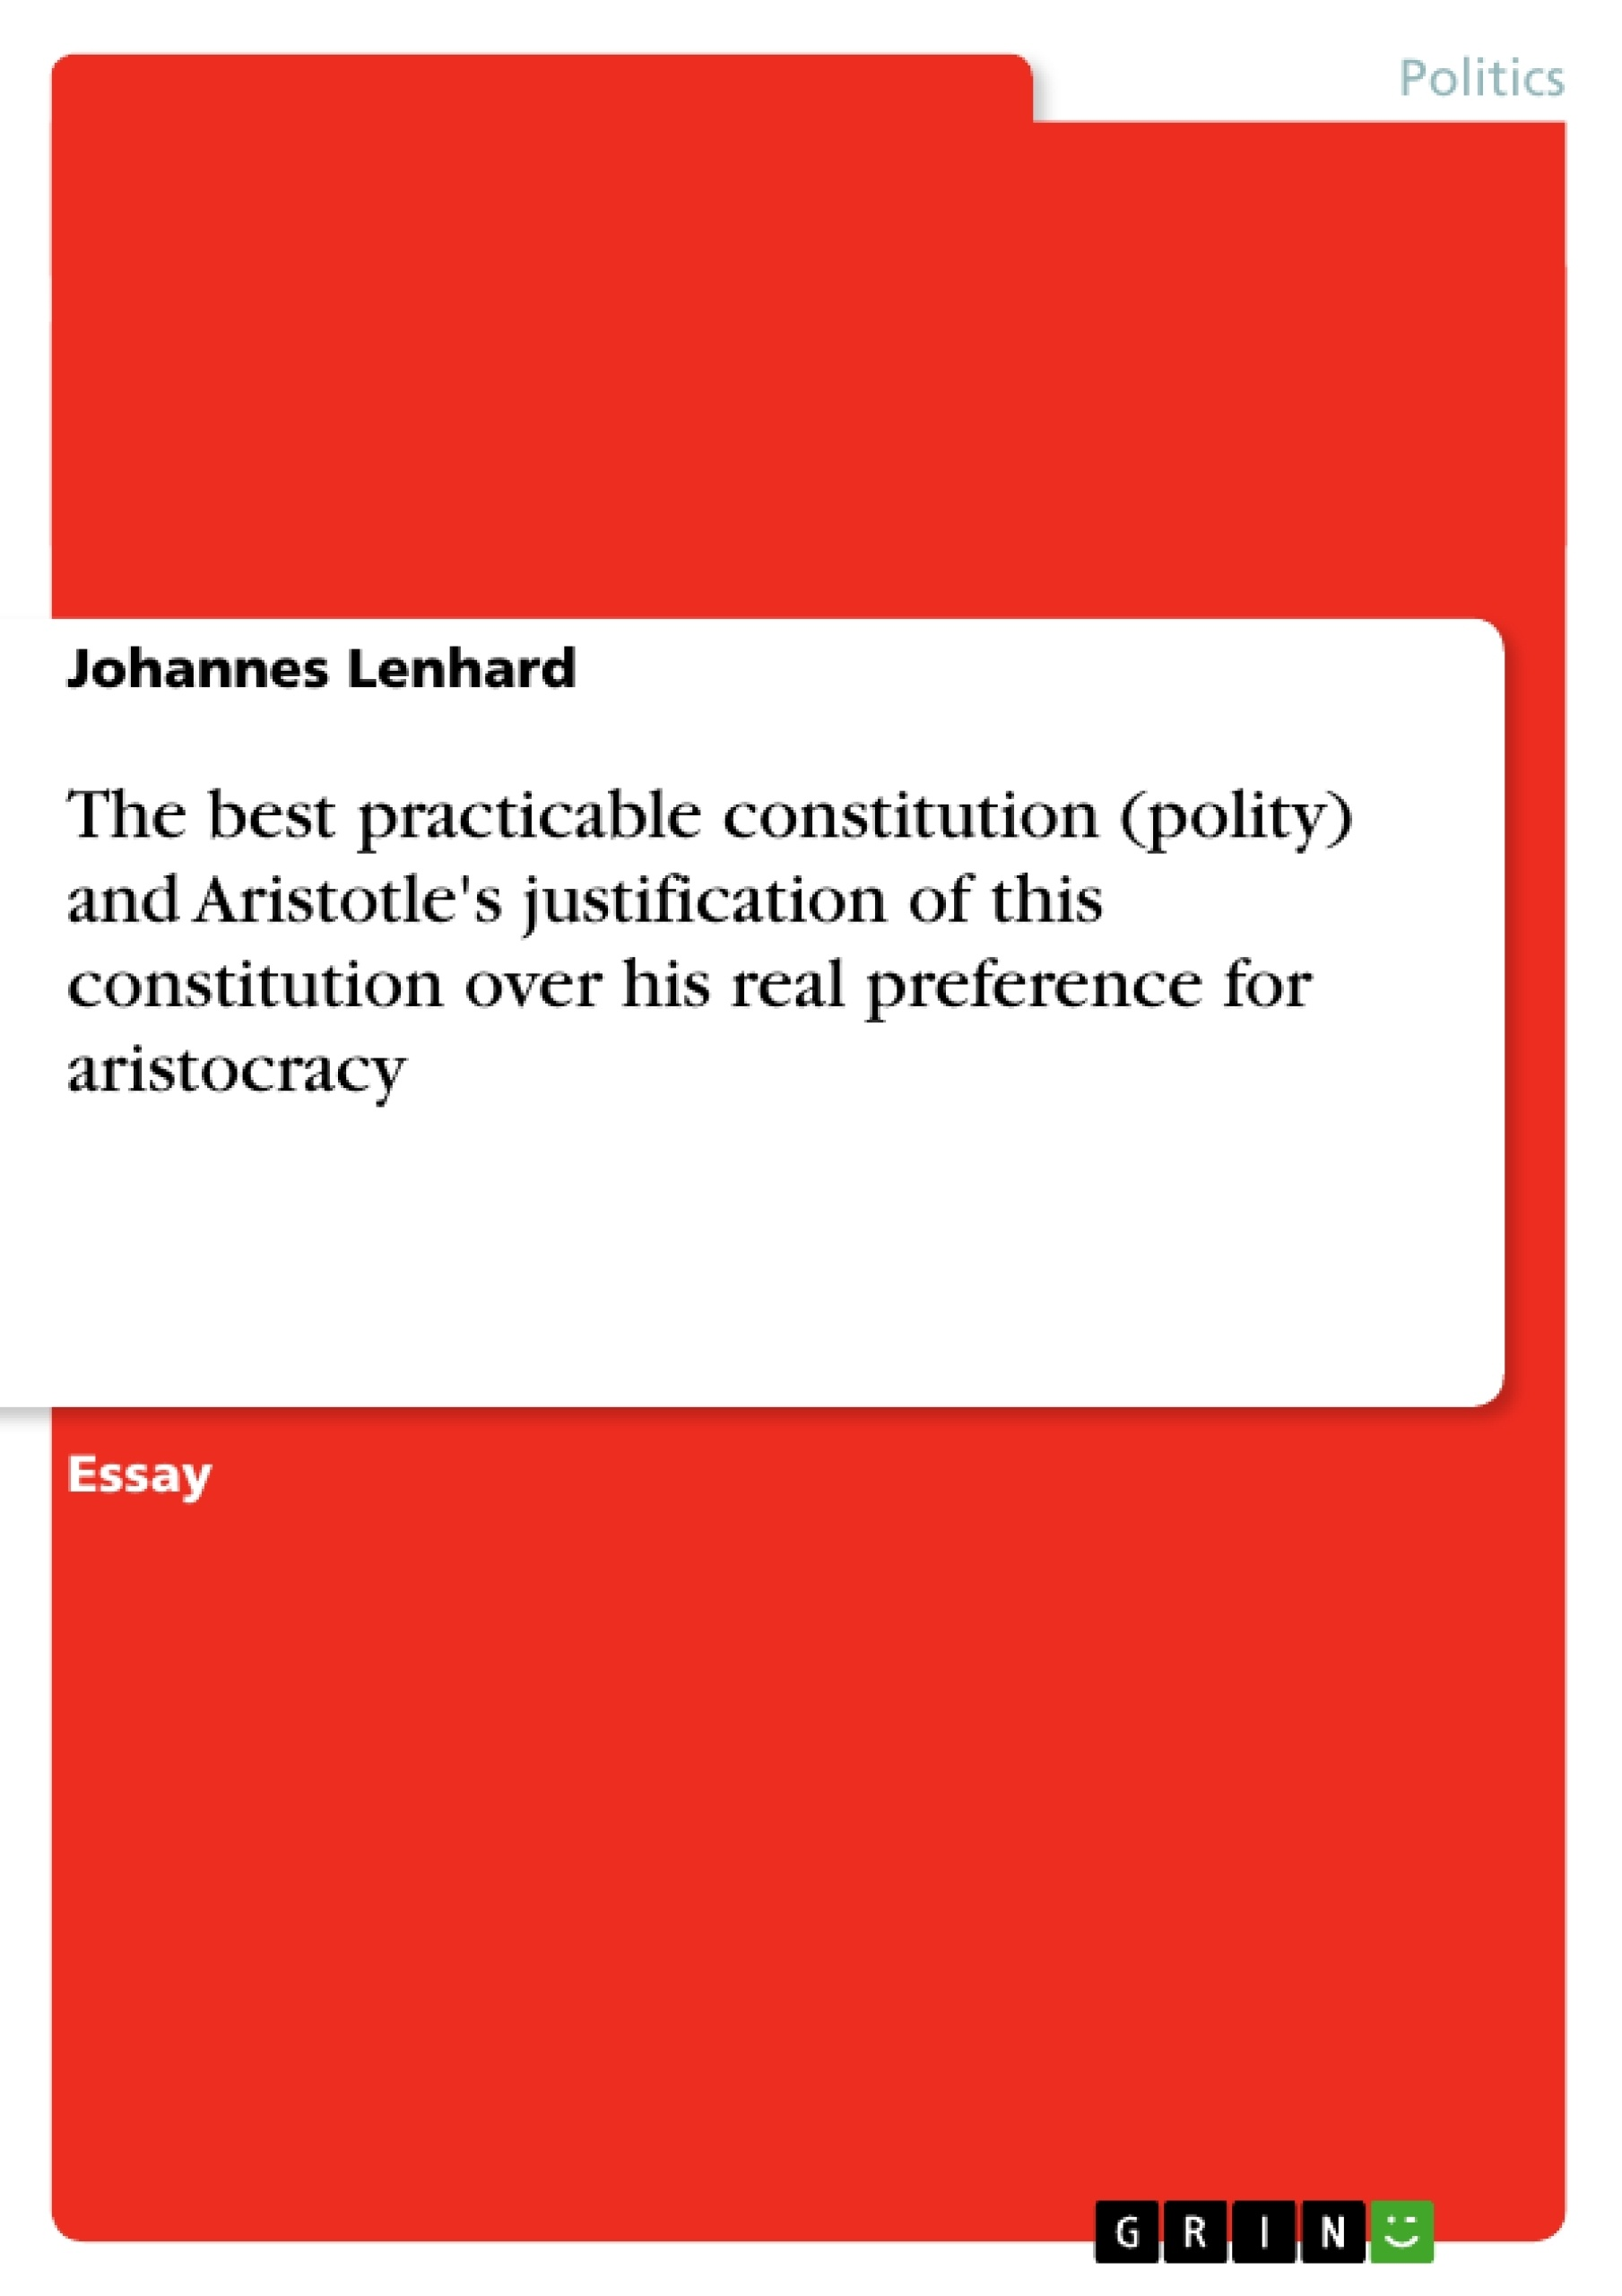 Title: The best practicable constitution (polity) and Aristotle's justification of this constitution over his real preference for aristocracy